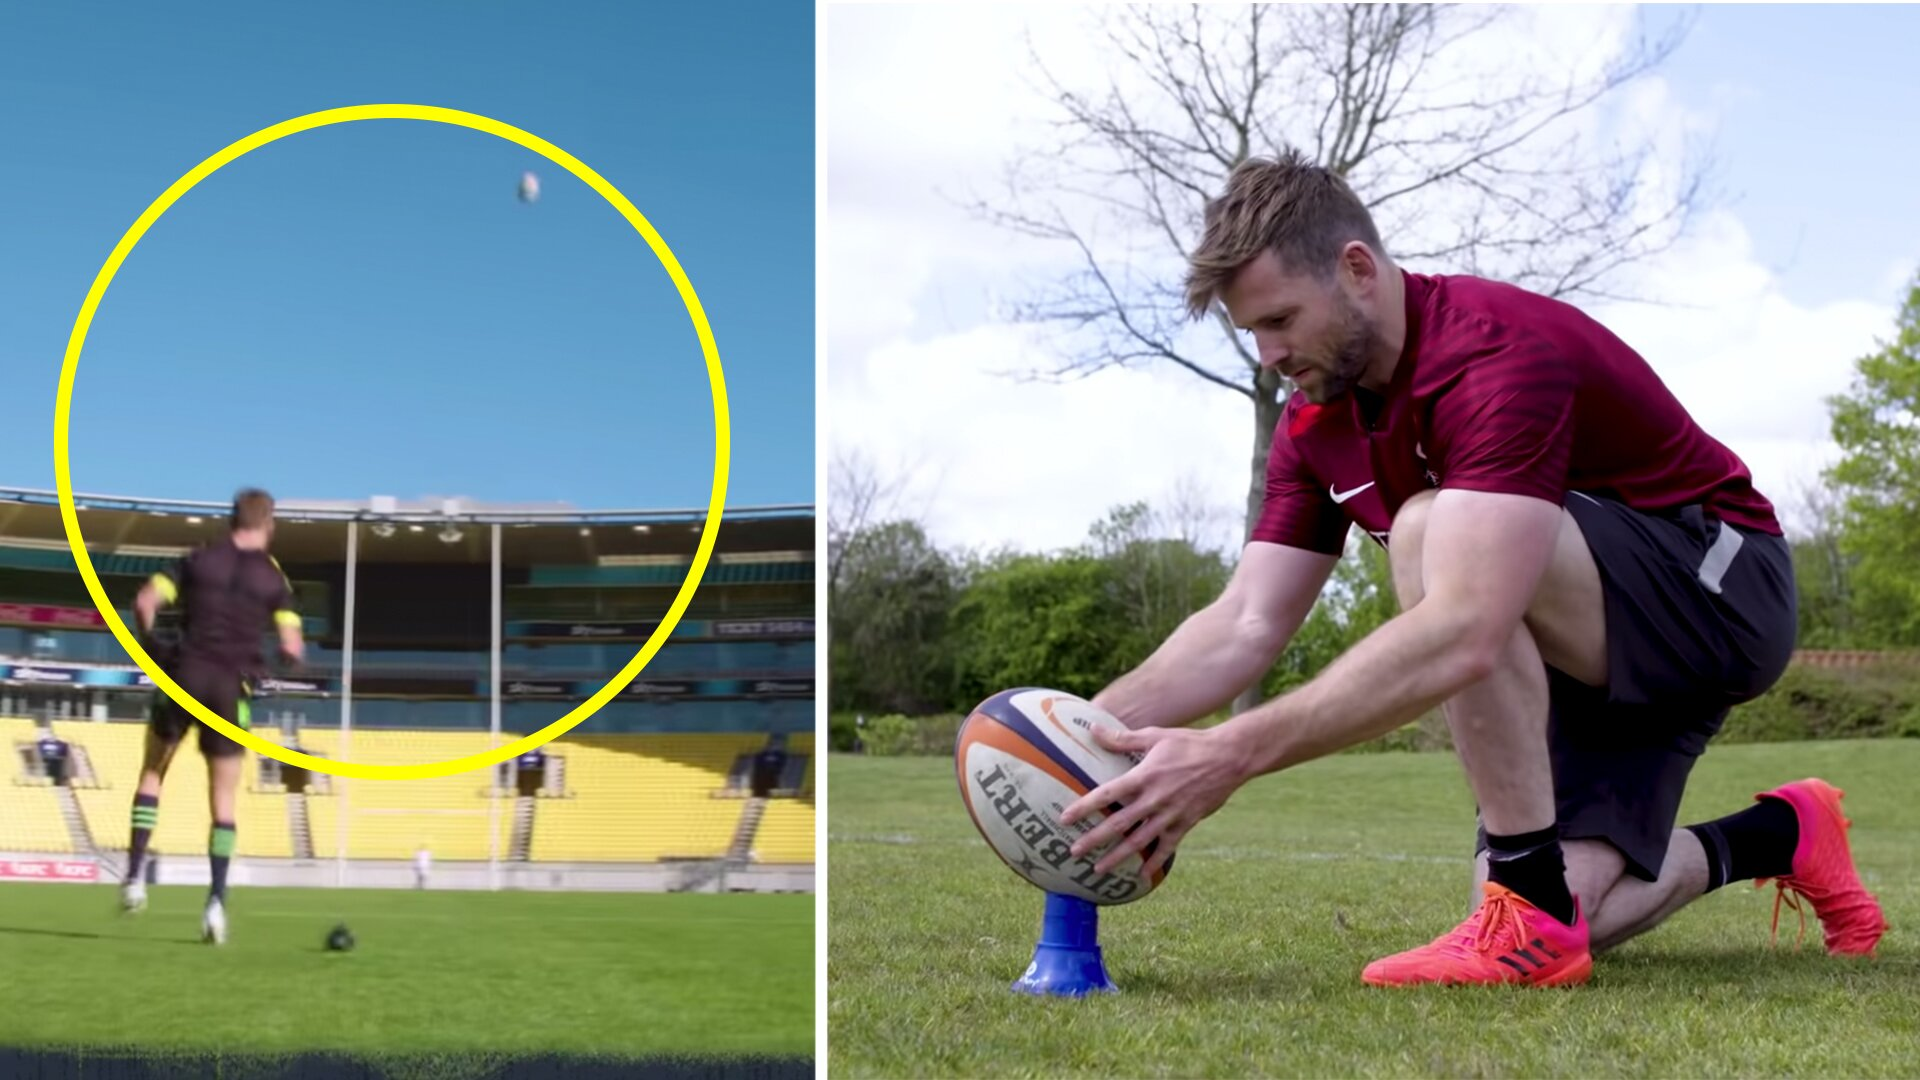 Barrett and Daly attempt to break Thorburn's longest rugby kick record